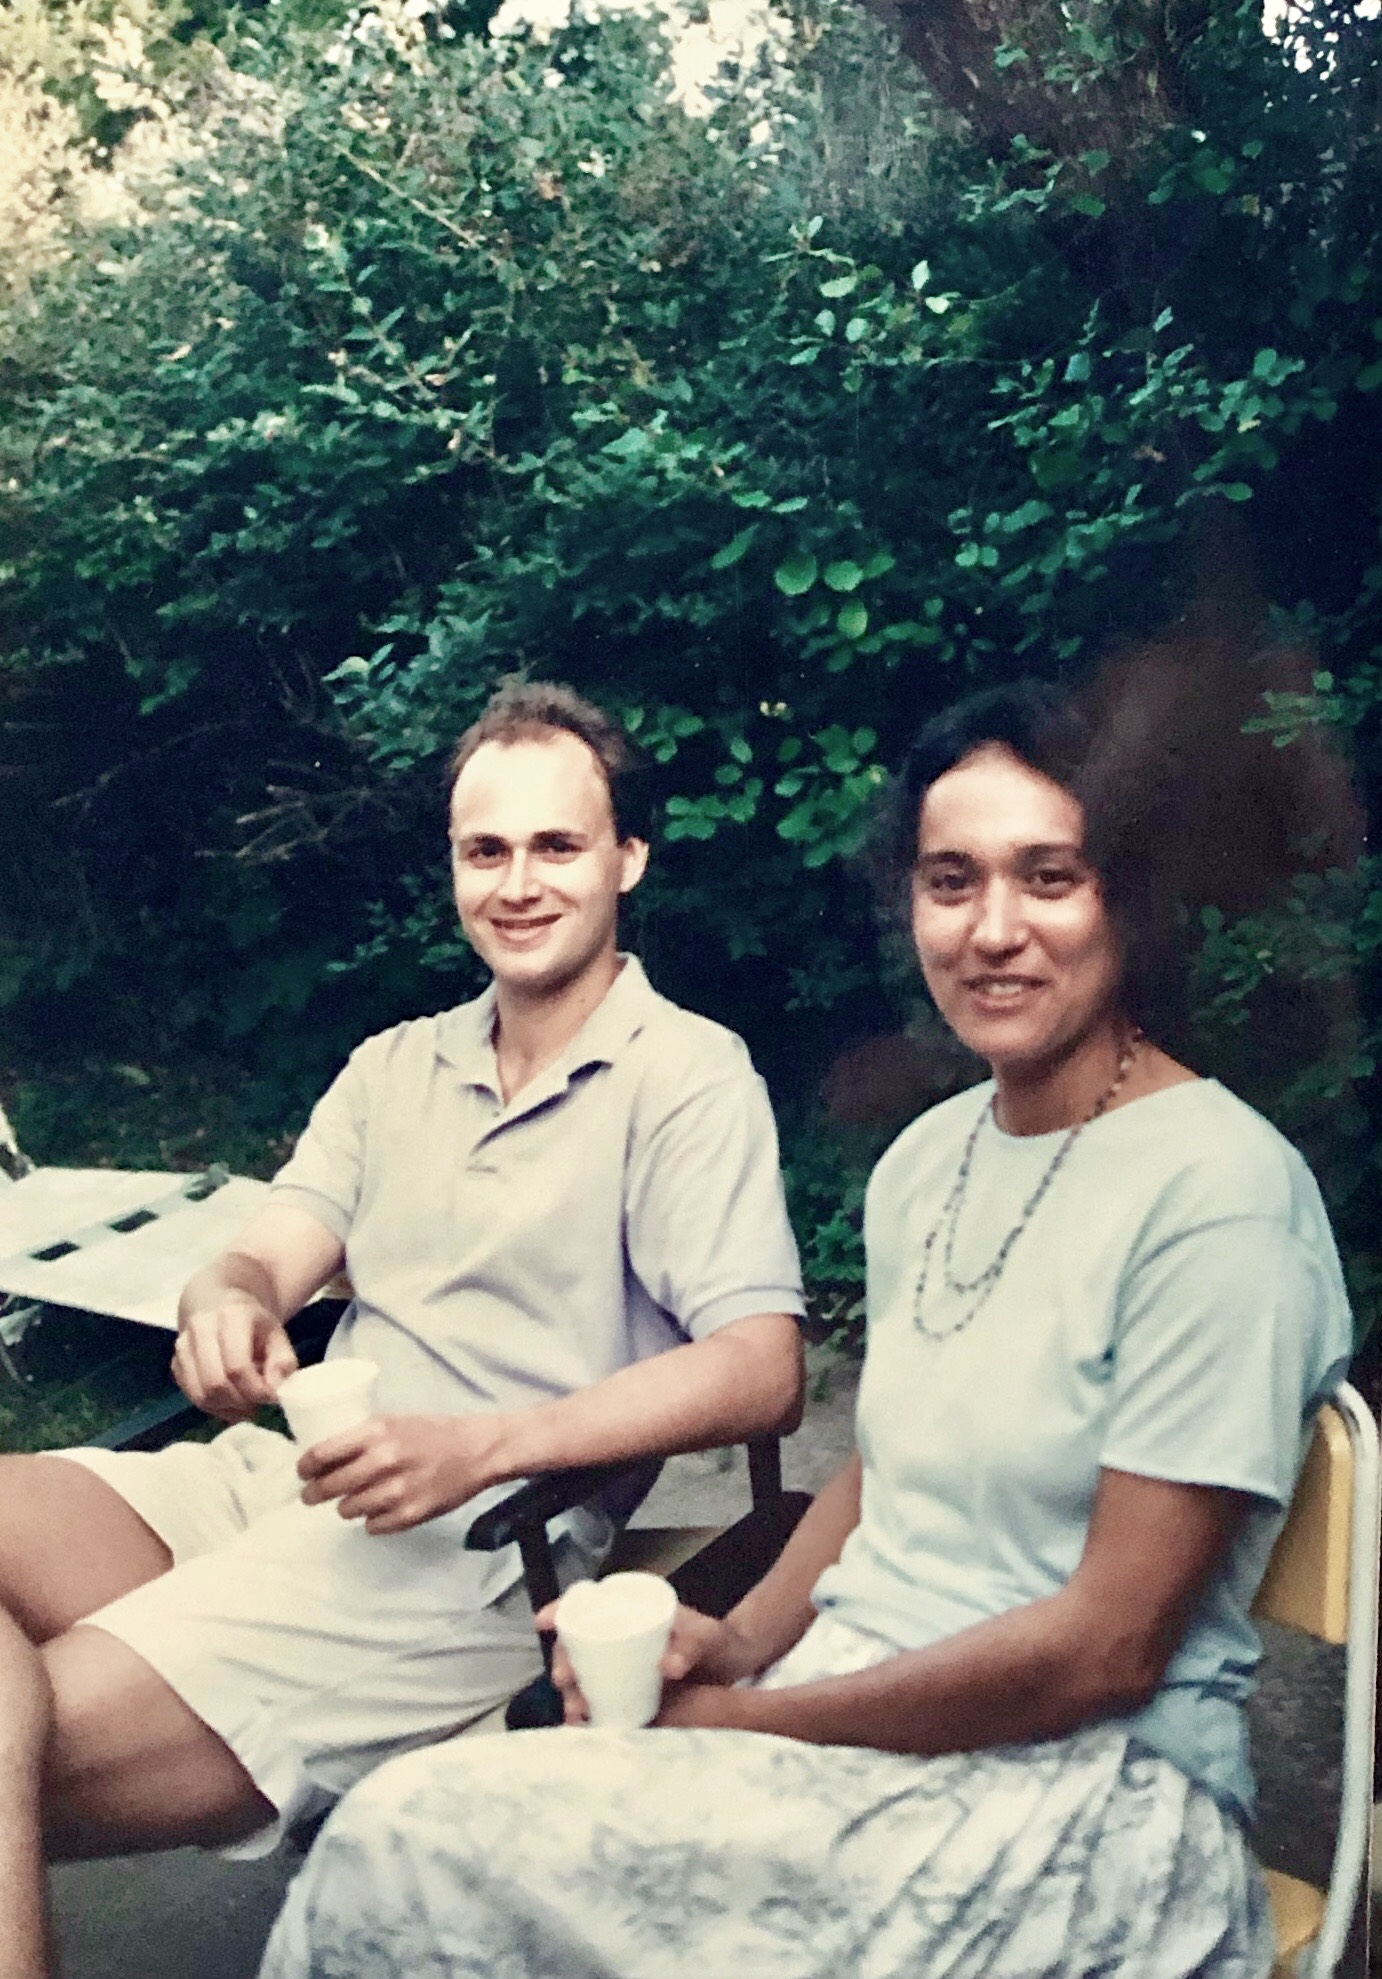 Photo of Todd Diacon and Moema Furtado, who met at the University of Wisconsin-Madison more than 30 years ago. (Photo provided by Moema Furtado)